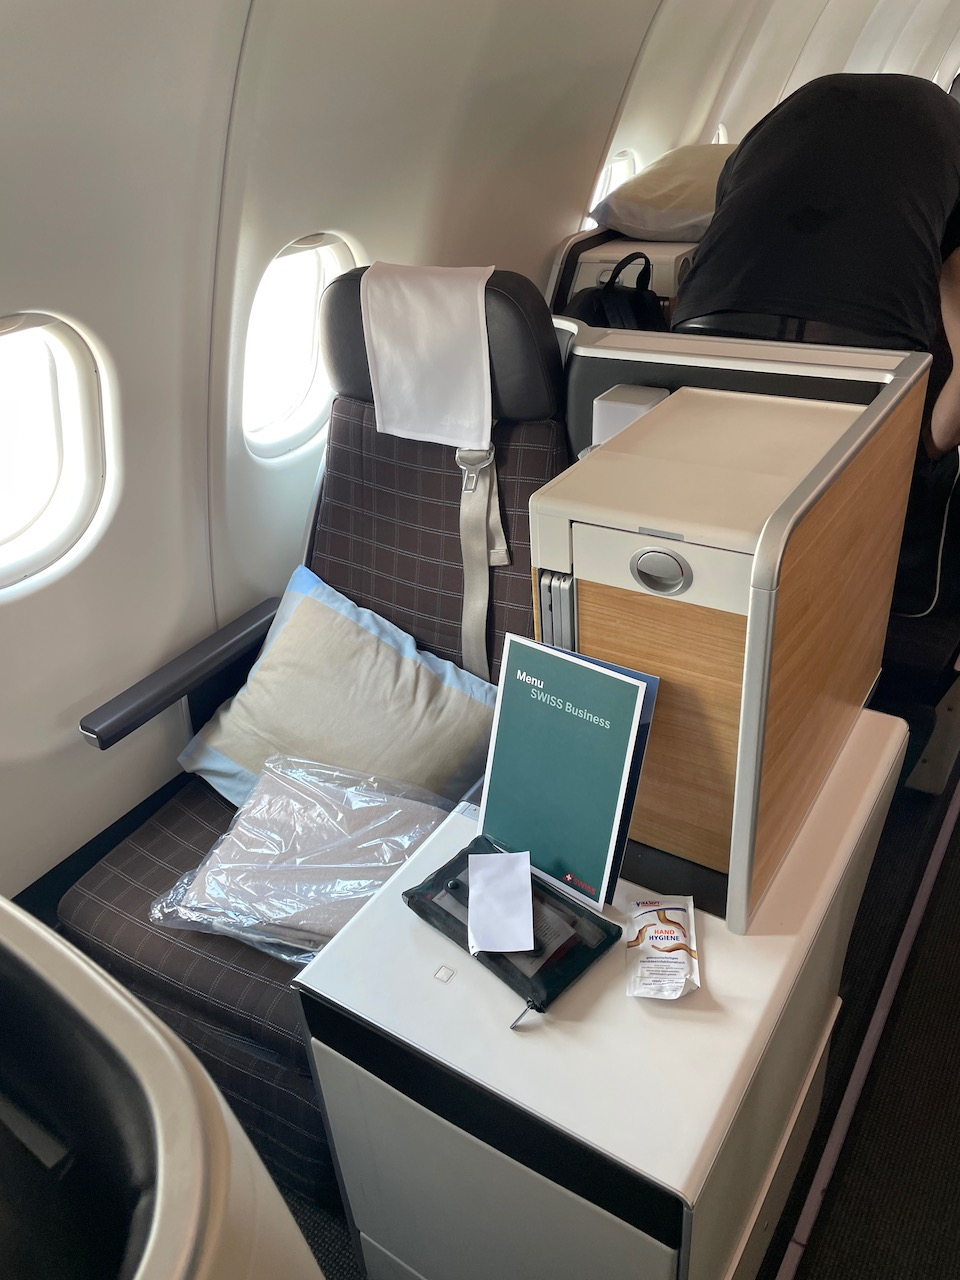 Upgrade to Business Class on Swiss for 800 CHF